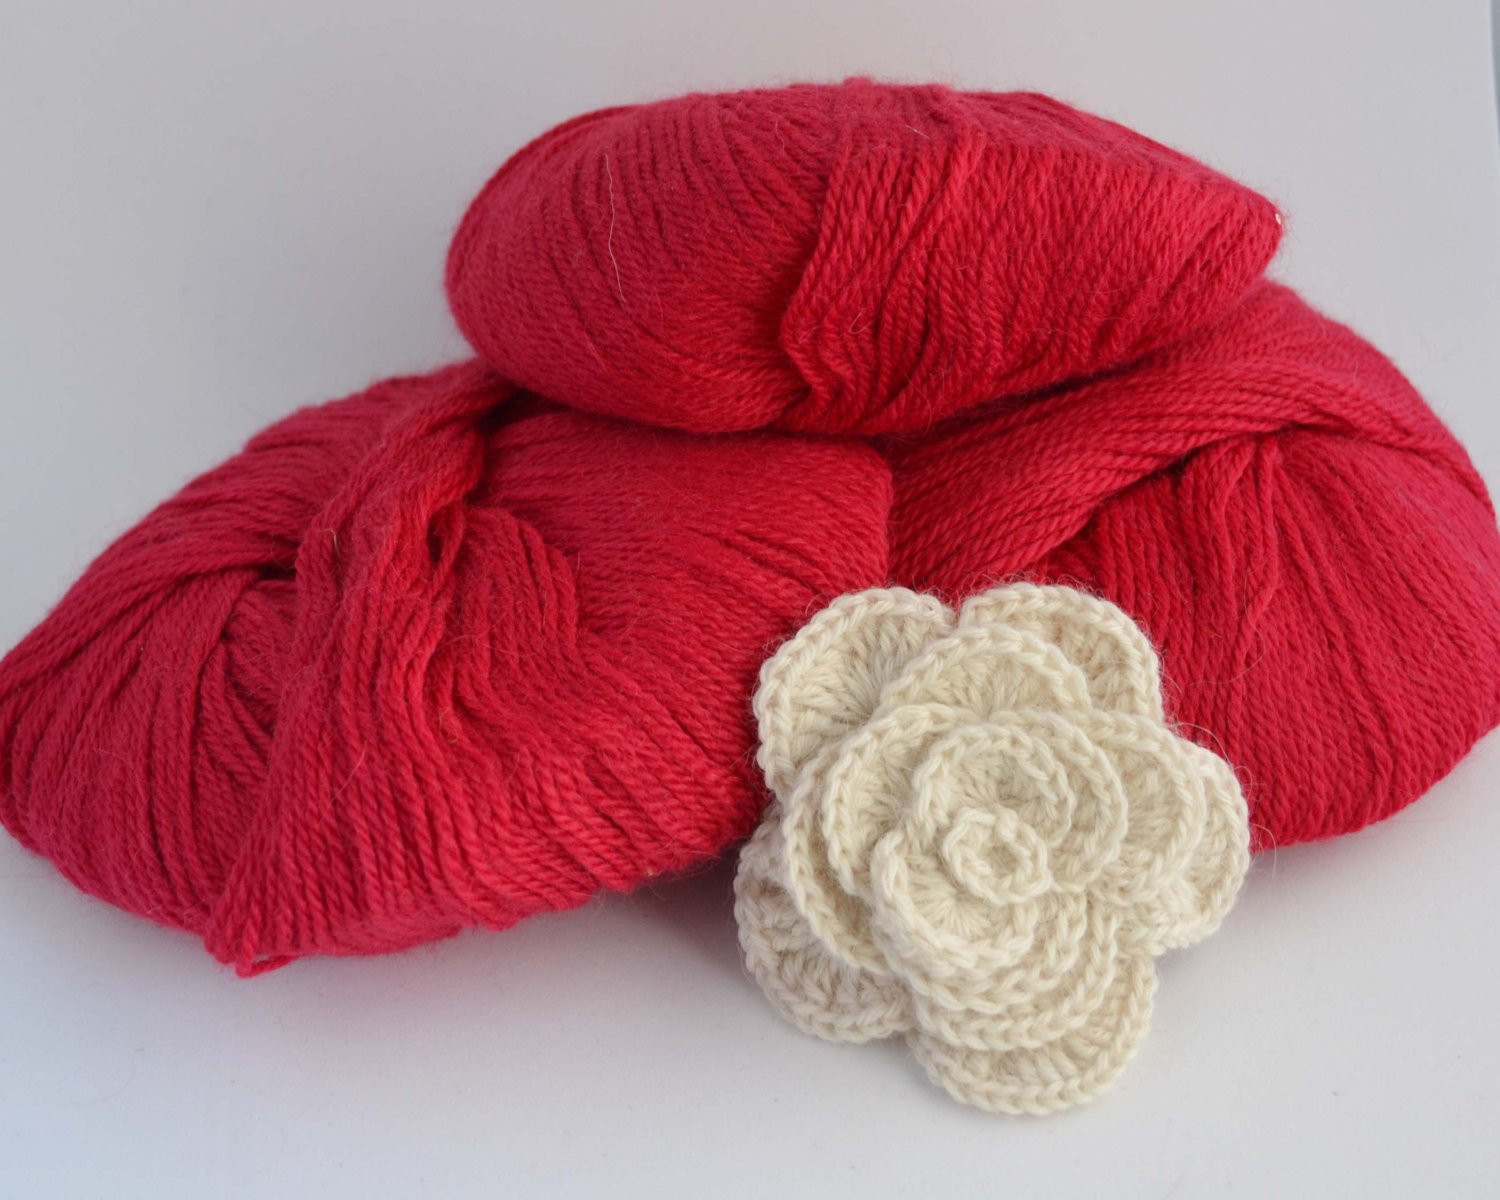 Red Baby Yarn Luxury Baby Alpaca Wool Red Yarn Make A Red Christmas Scarf Of Attractive 48 Photos Red Baby Yarn